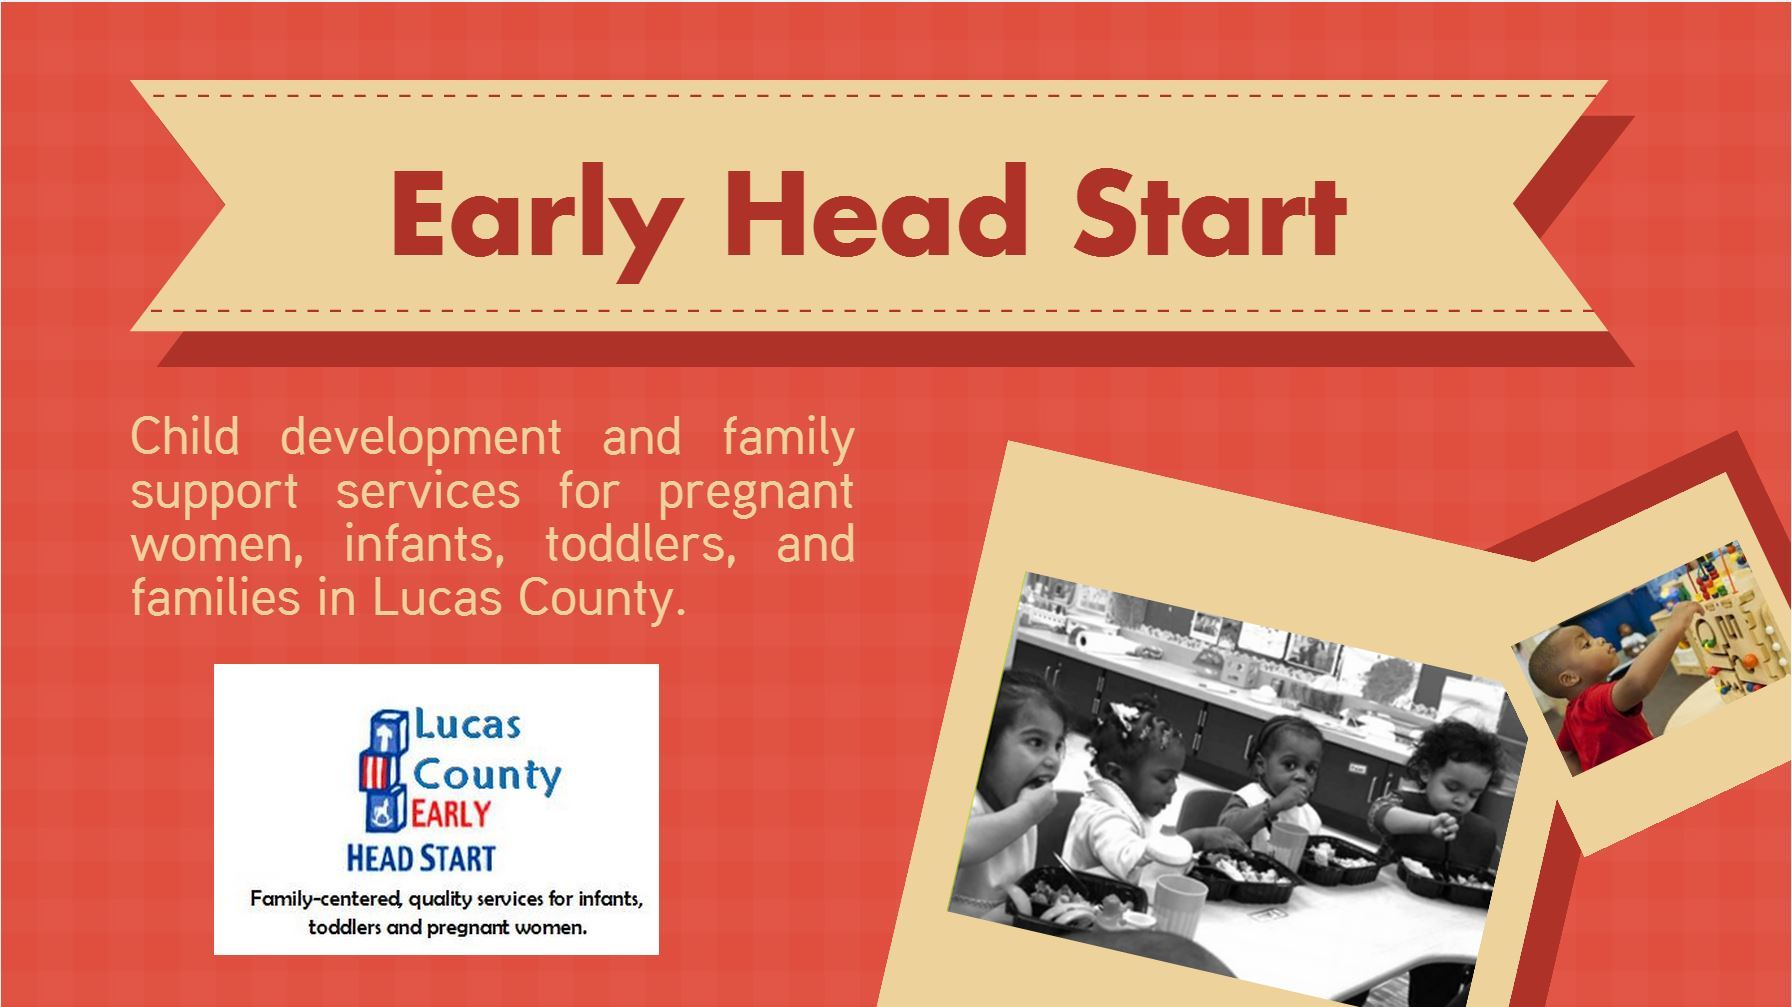 Family-center, quality services for infants, toddlers, and pregnant women.